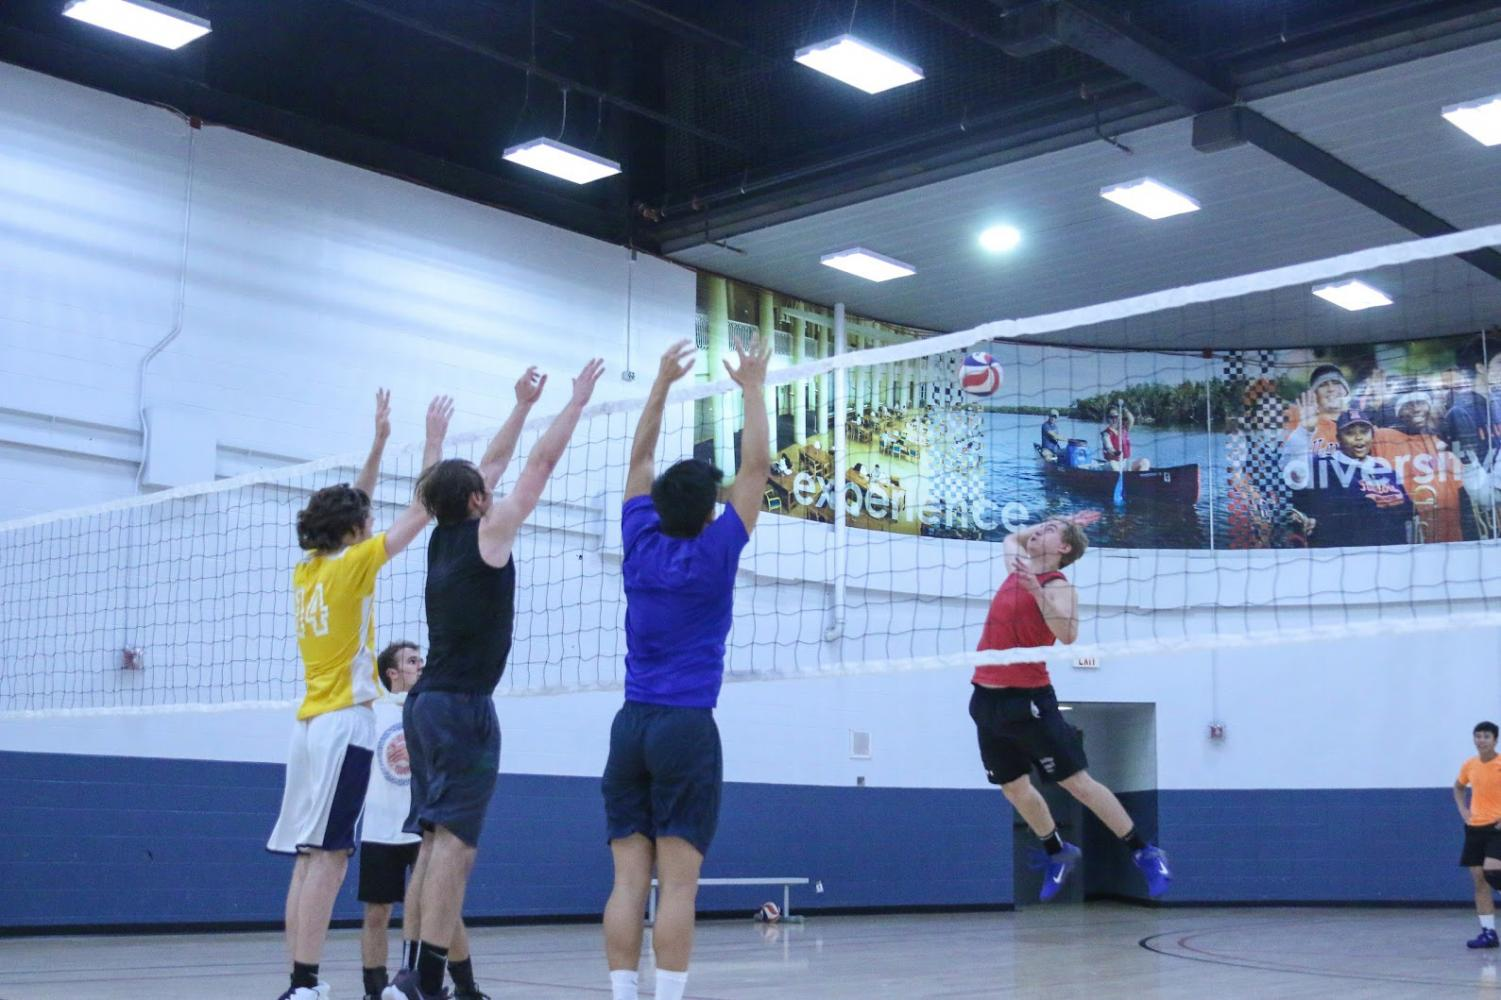 Kyle Biedron, Junior, spikes the ball during an Illini men's club volleyball practice at the ARC on Thursday November 2, 2017.